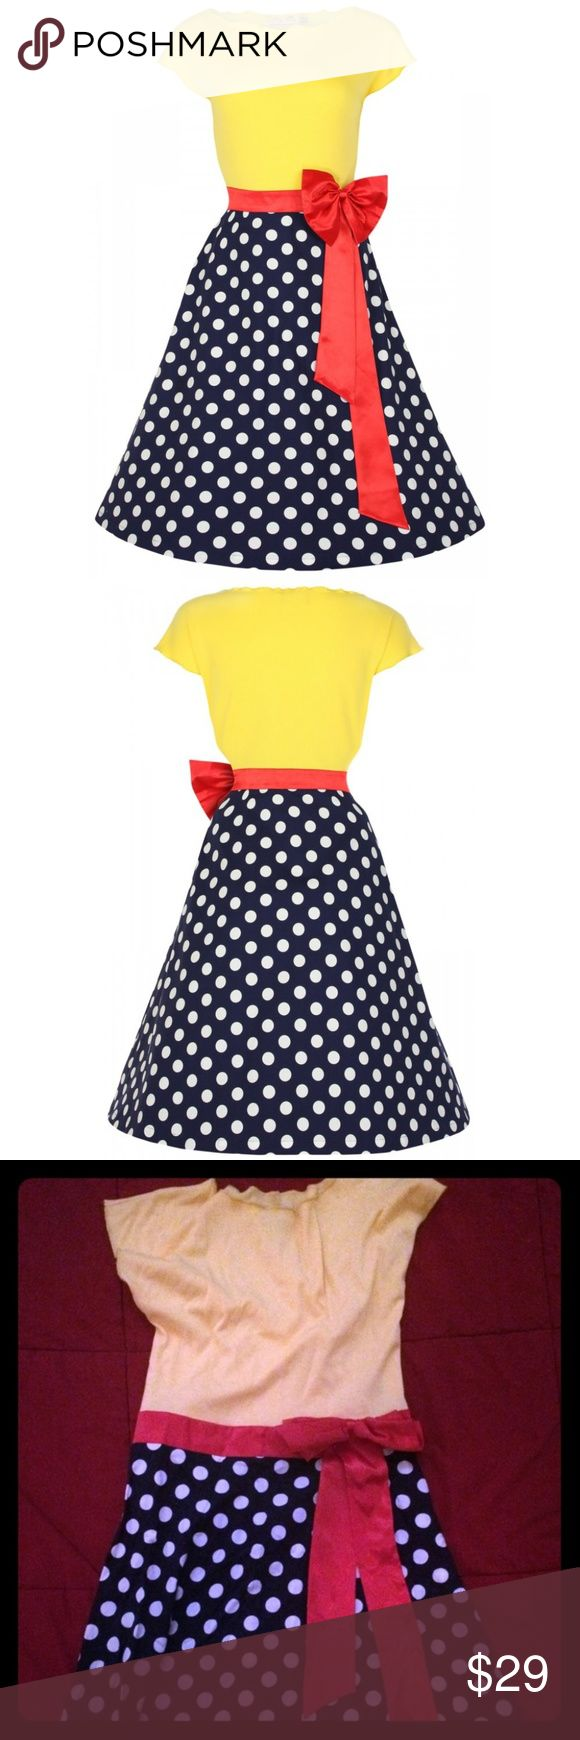 Lindy Bop dress- polka dot retro vintage 50's CUTE No need to go to Paris to get this look! Sit in cafes and sip coffee while looking like you just stepped out of a Parisian 1950 fashion magazine.This dress features a ribbed stretch jersey cotton top, with a scoop neck, and adorable red satin bow (attached/ not removable). The polka dot skirt flares to give a beautiful and flattering shape to the body.Skirt is 97% polyester 3% elastin. Entry zipper on side. No tags, worn once, excellent…